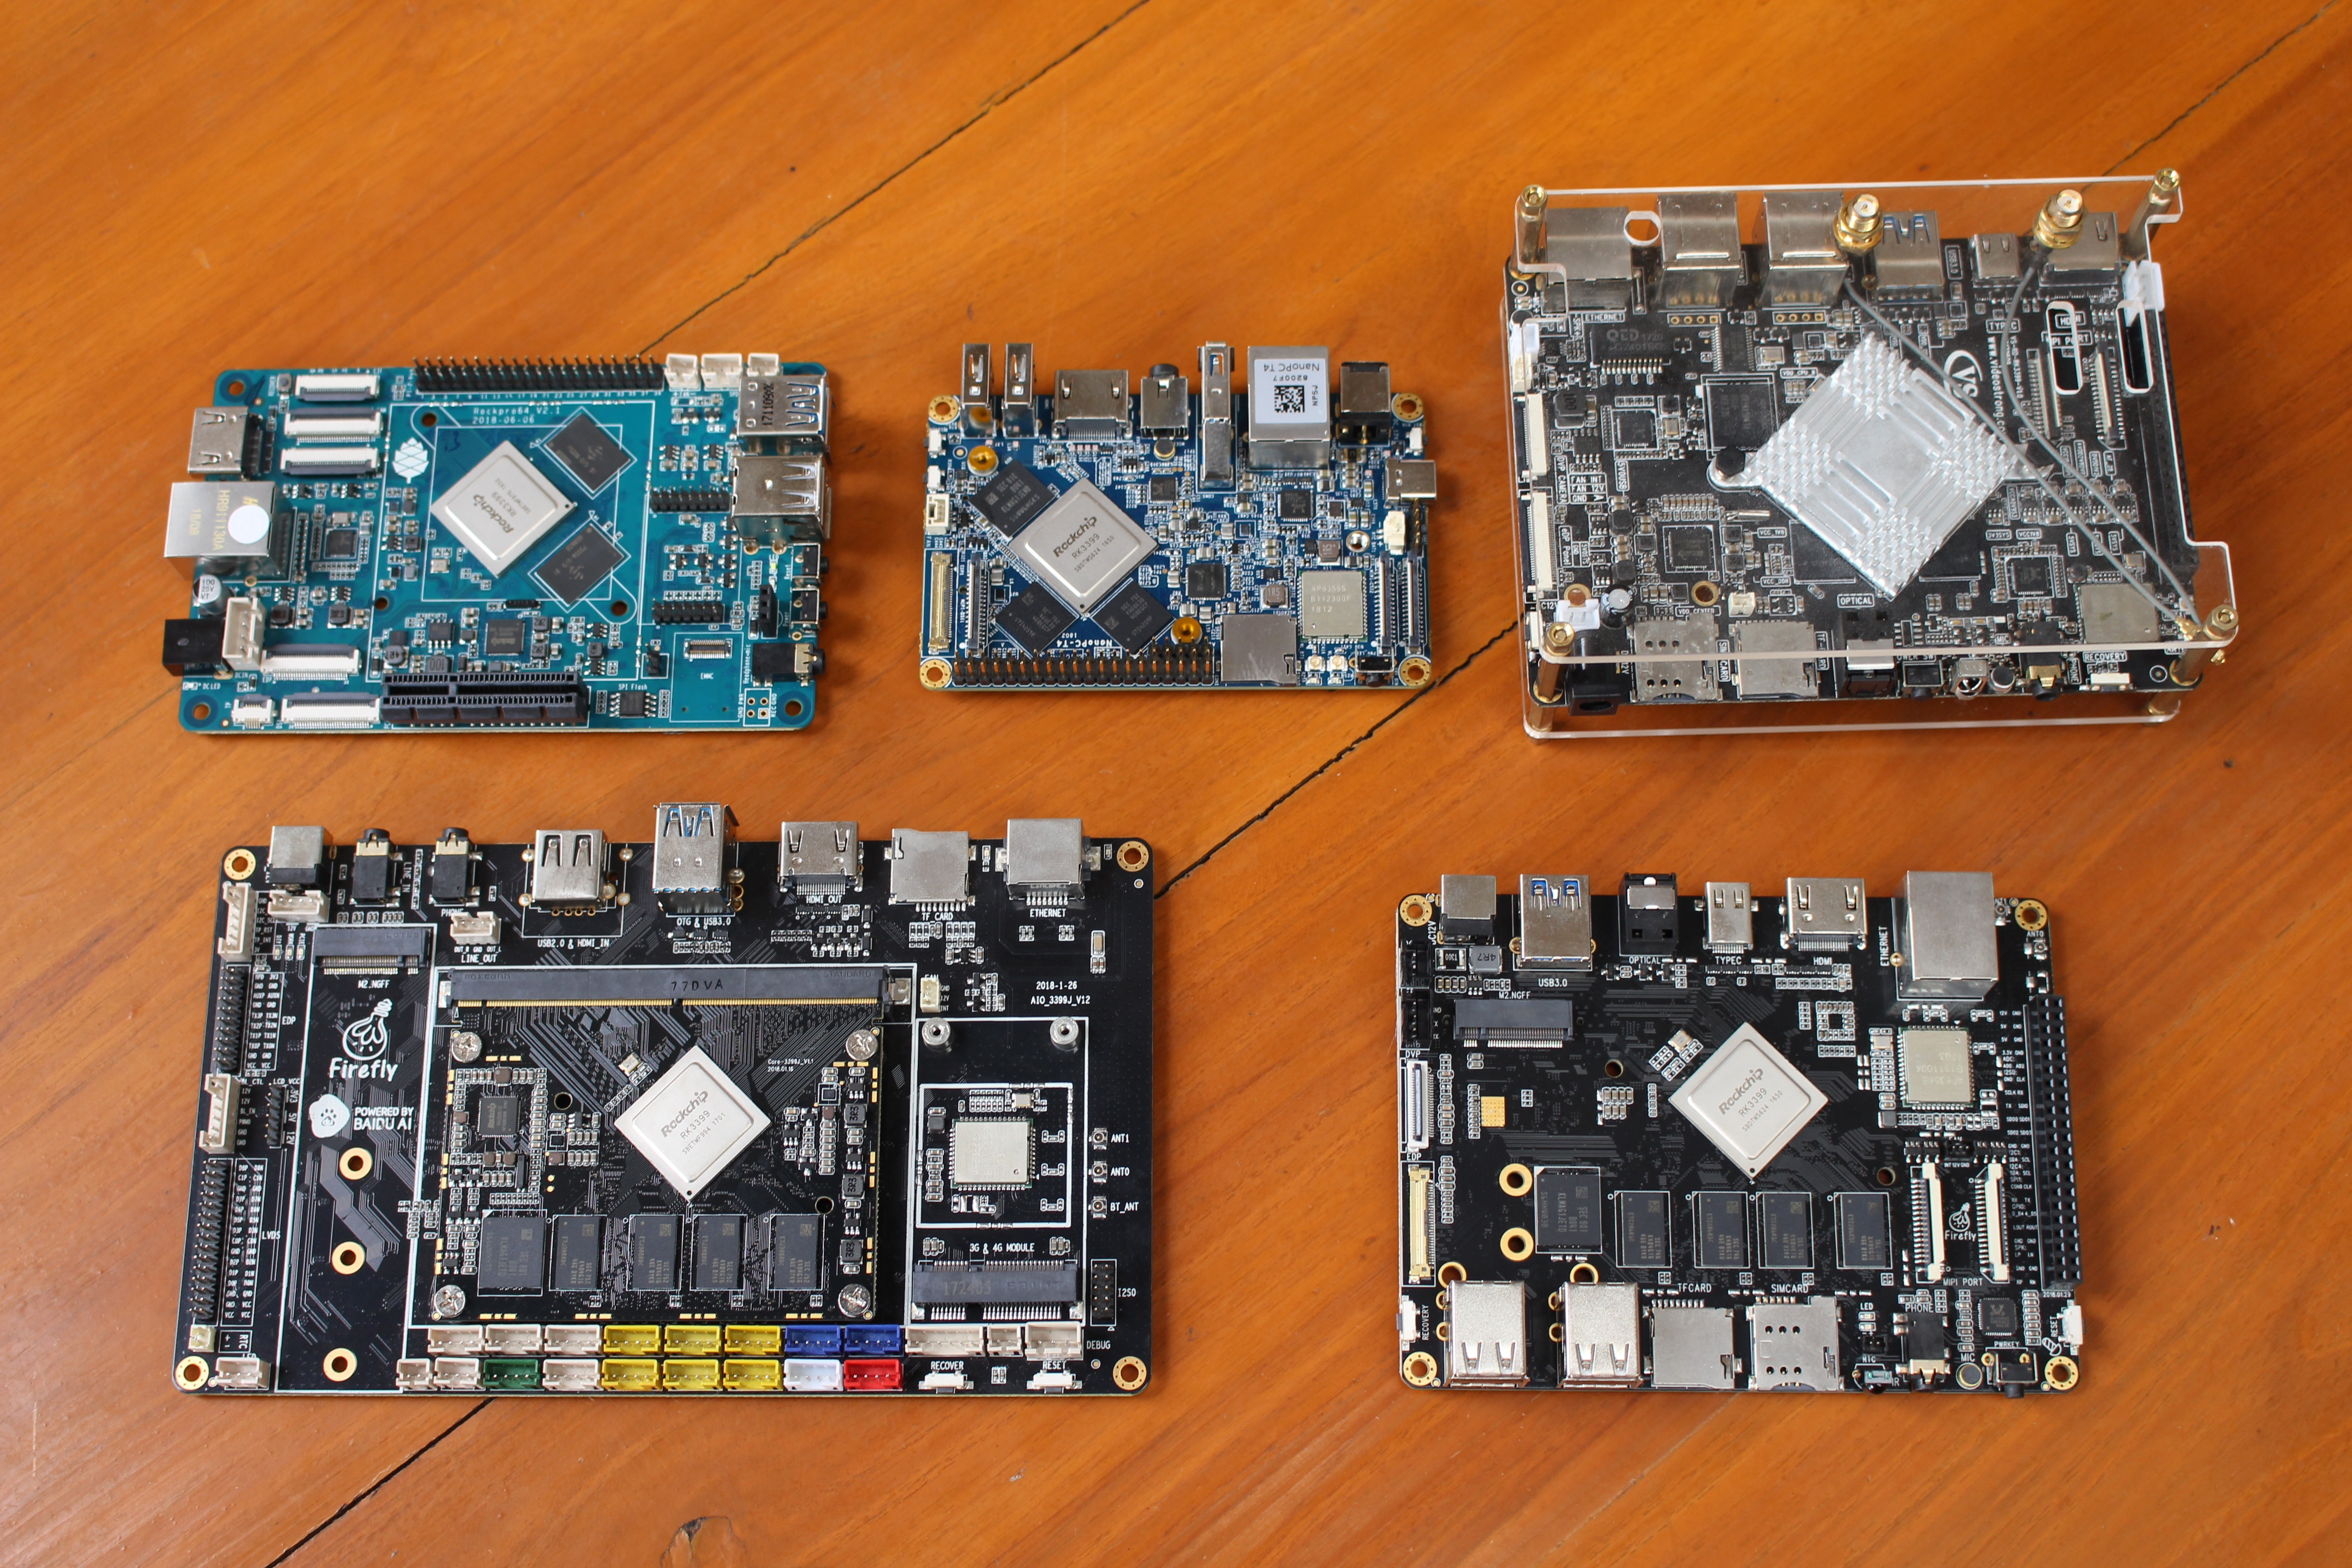 RockPro64 RK3399 Board Linux Review with Ubuntu 18 04 + LXDE